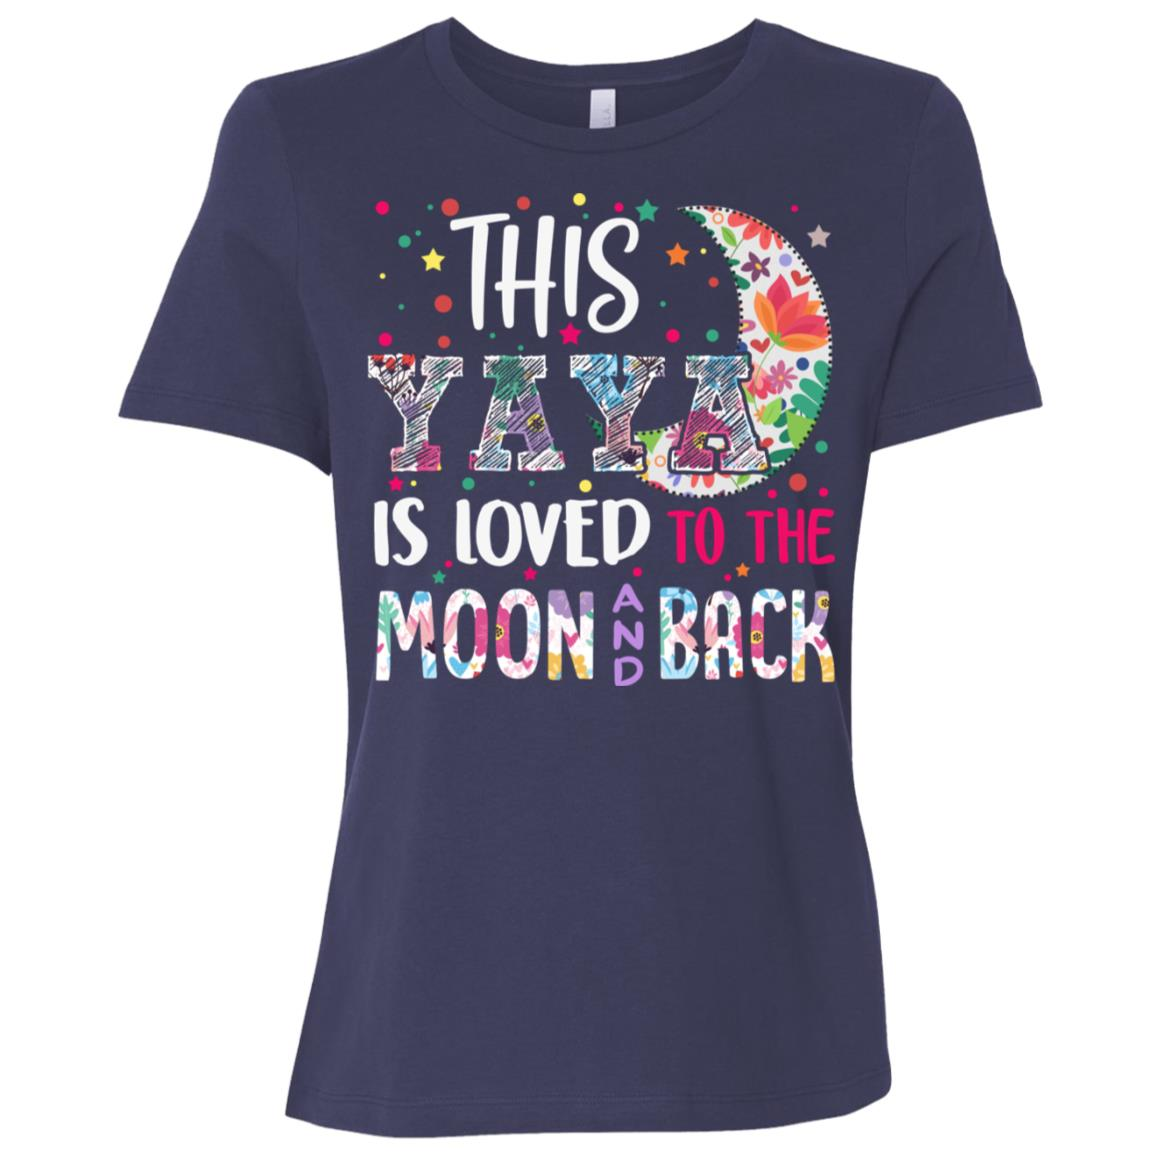 This Yaya is loved to the moon and back Women Short Sleeve T-Shirt